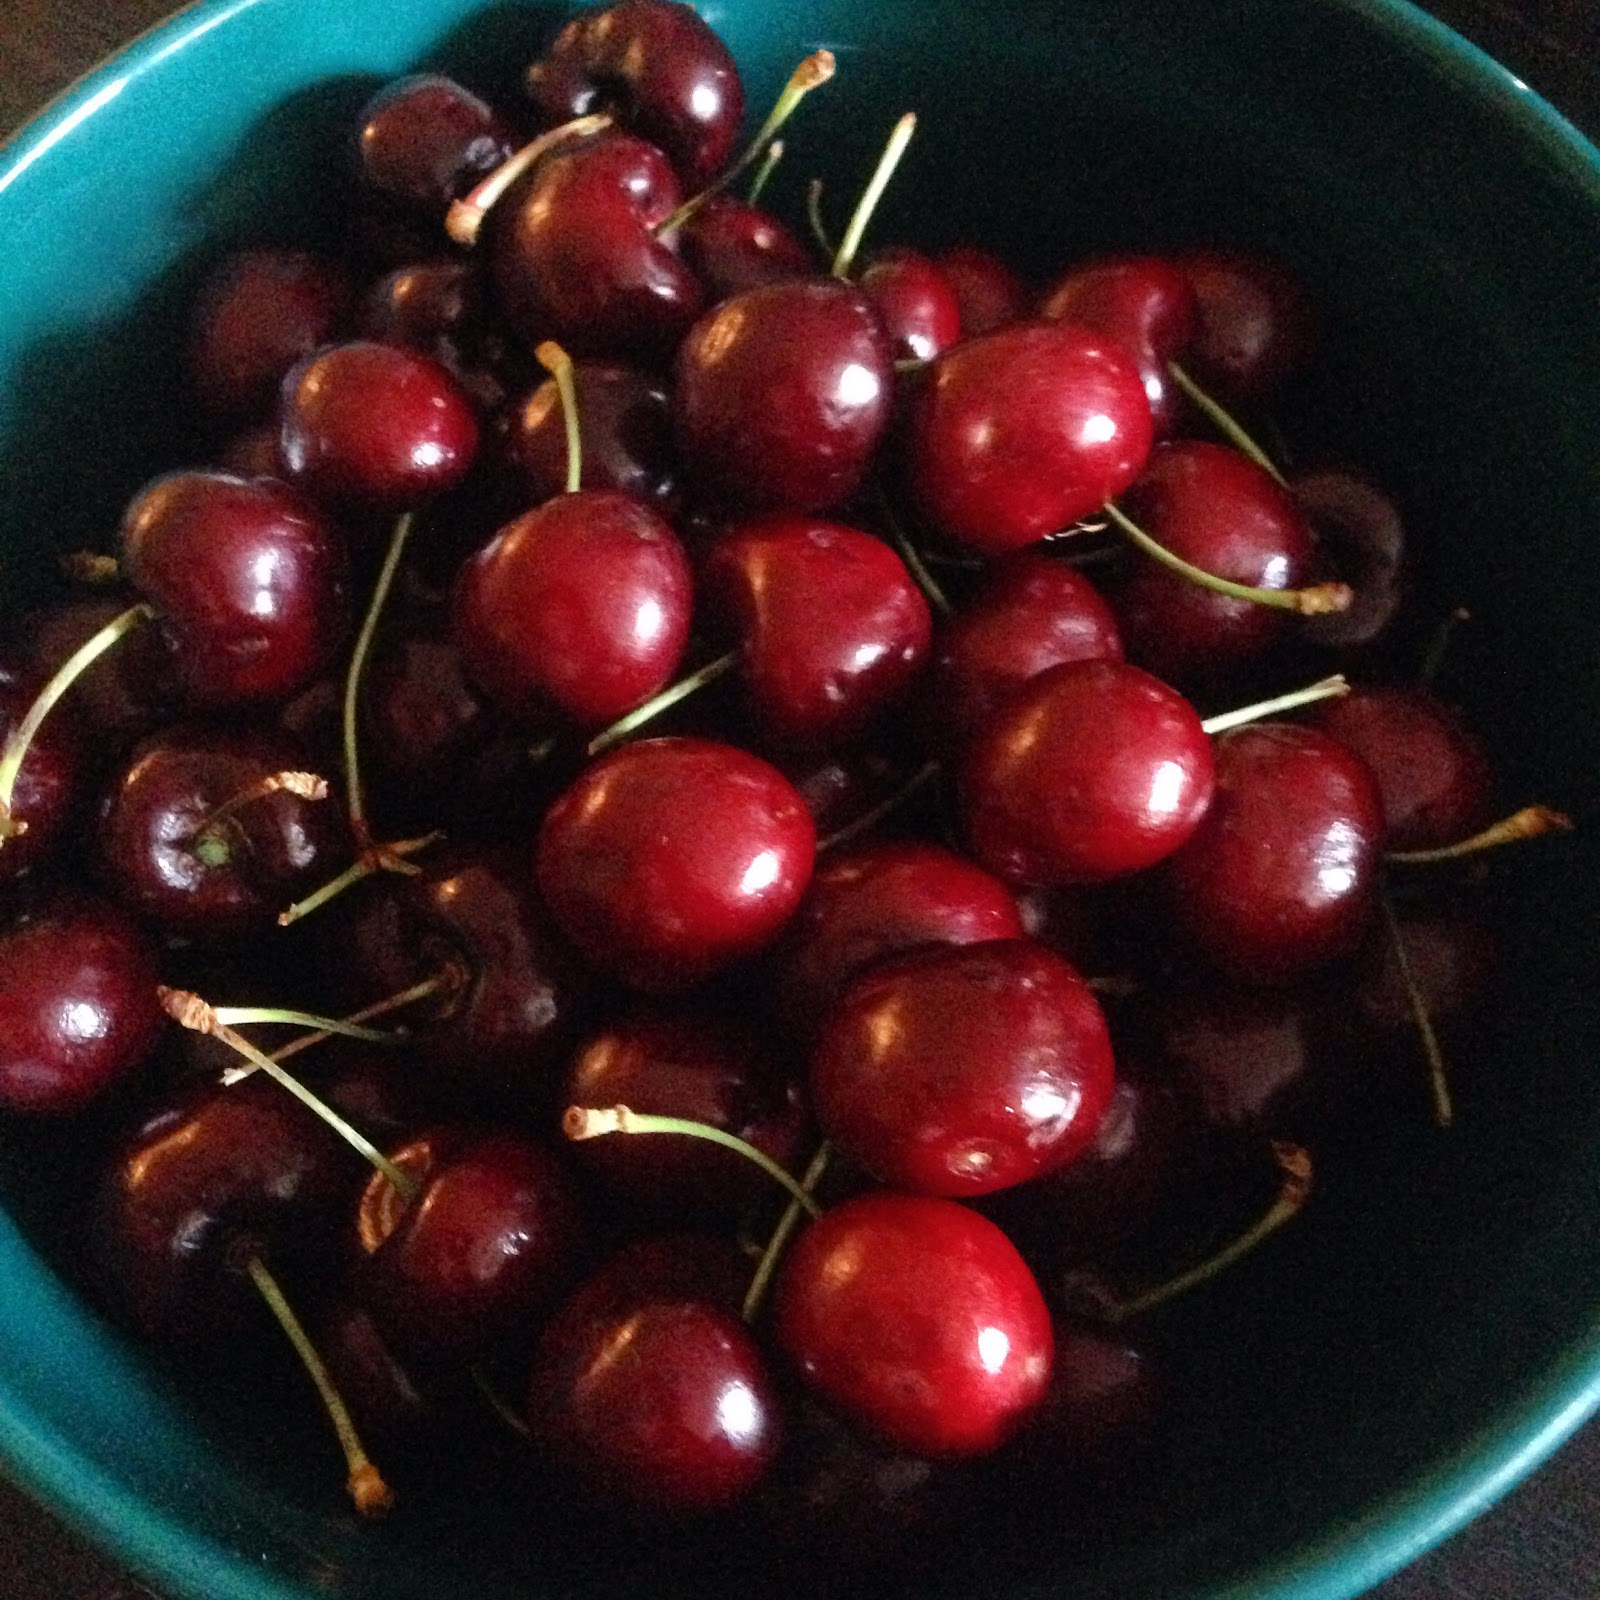 Life is bowl full of ripe Bing cherries.